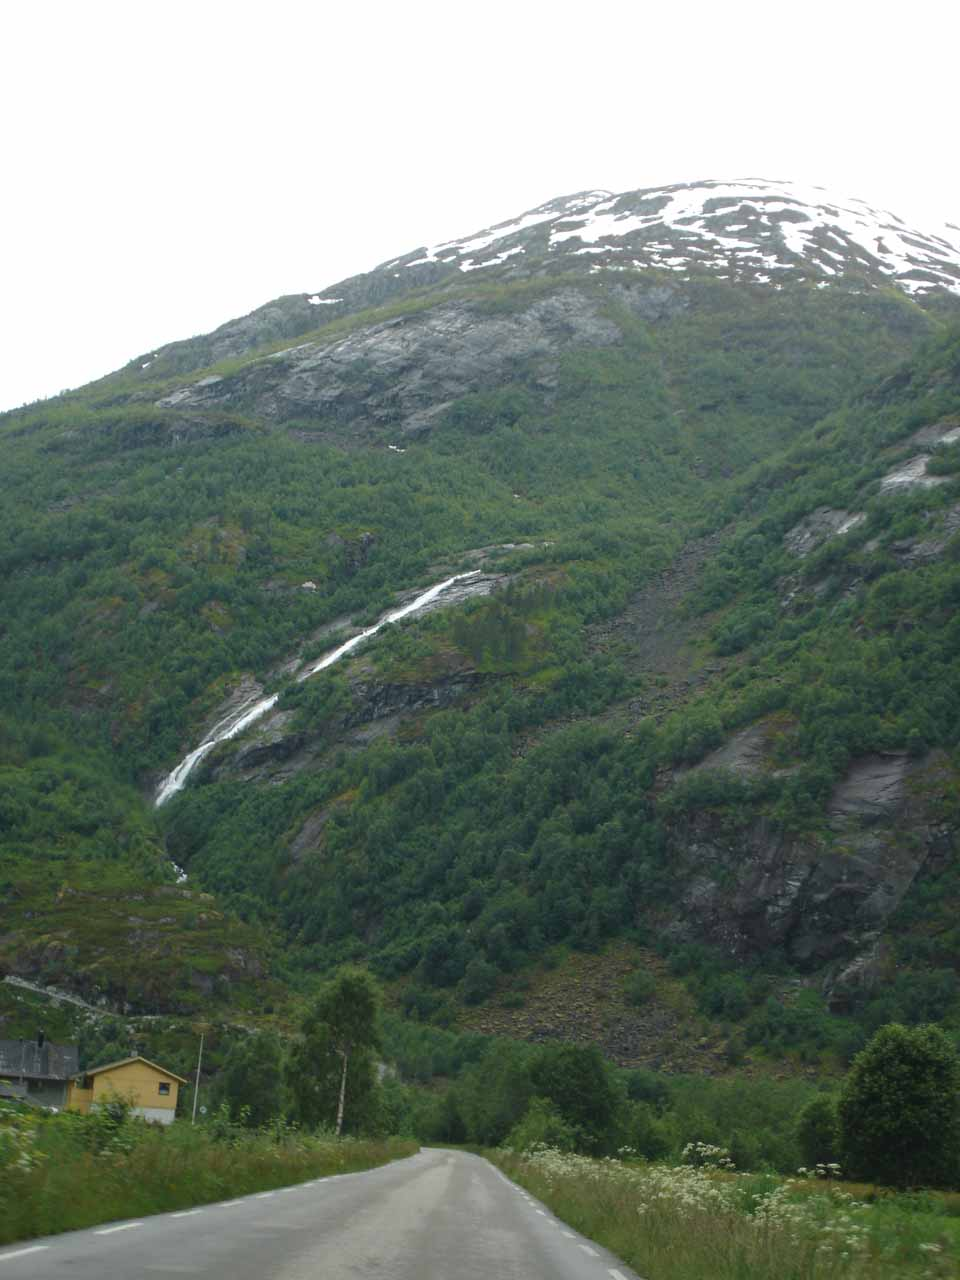 This was another tall and sliding waterfall we noticed in Jostedalen while going south on Road 604.  By now, we were getting waterfall-fatigued